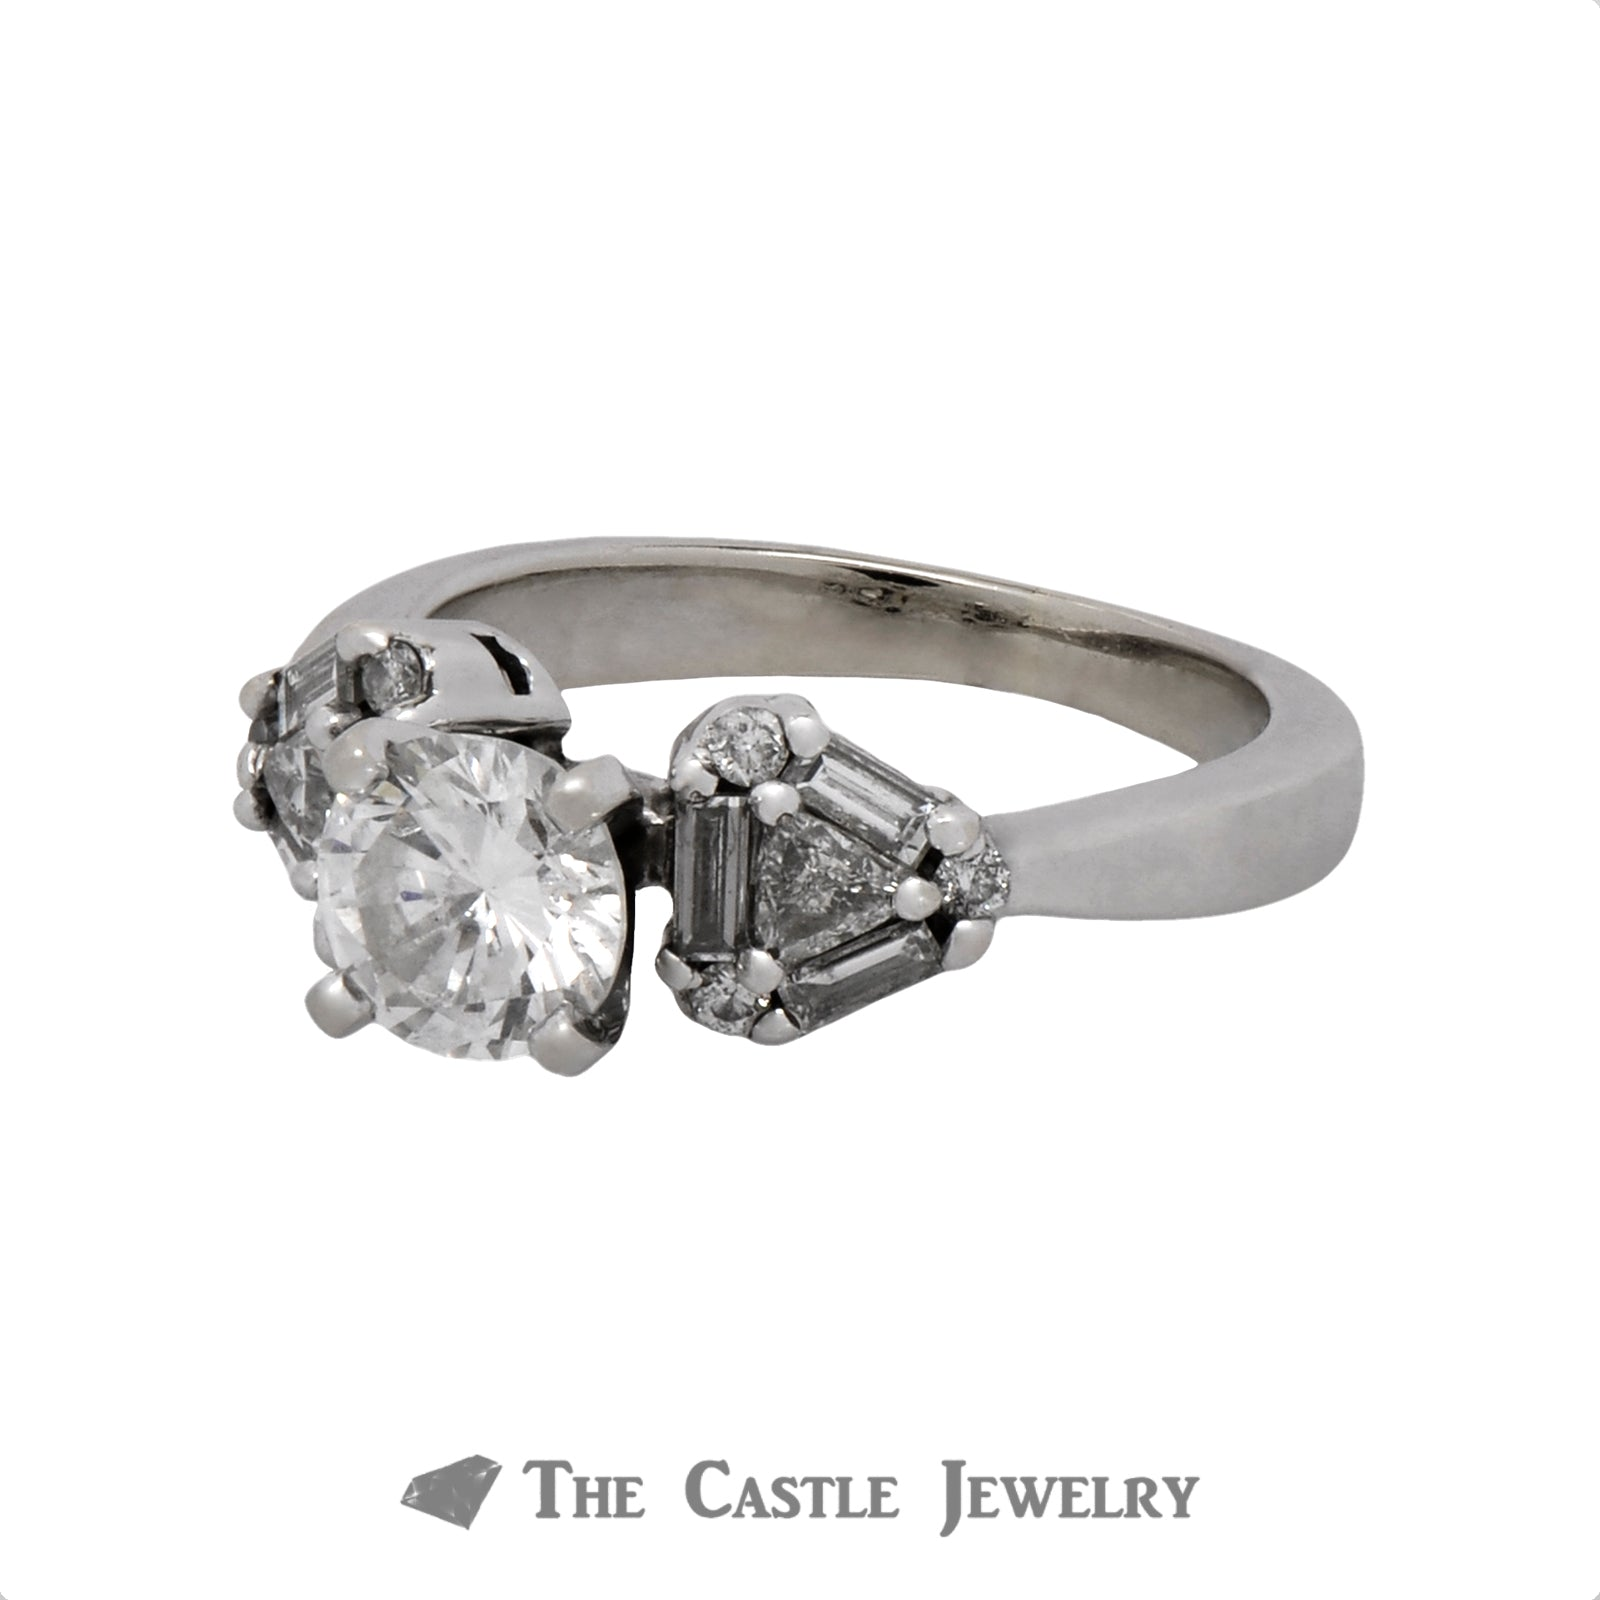 1.25cttw Diamond Engagement Ring with Baguette, Trillion and Round Cut Accents in 14k White Gold-2